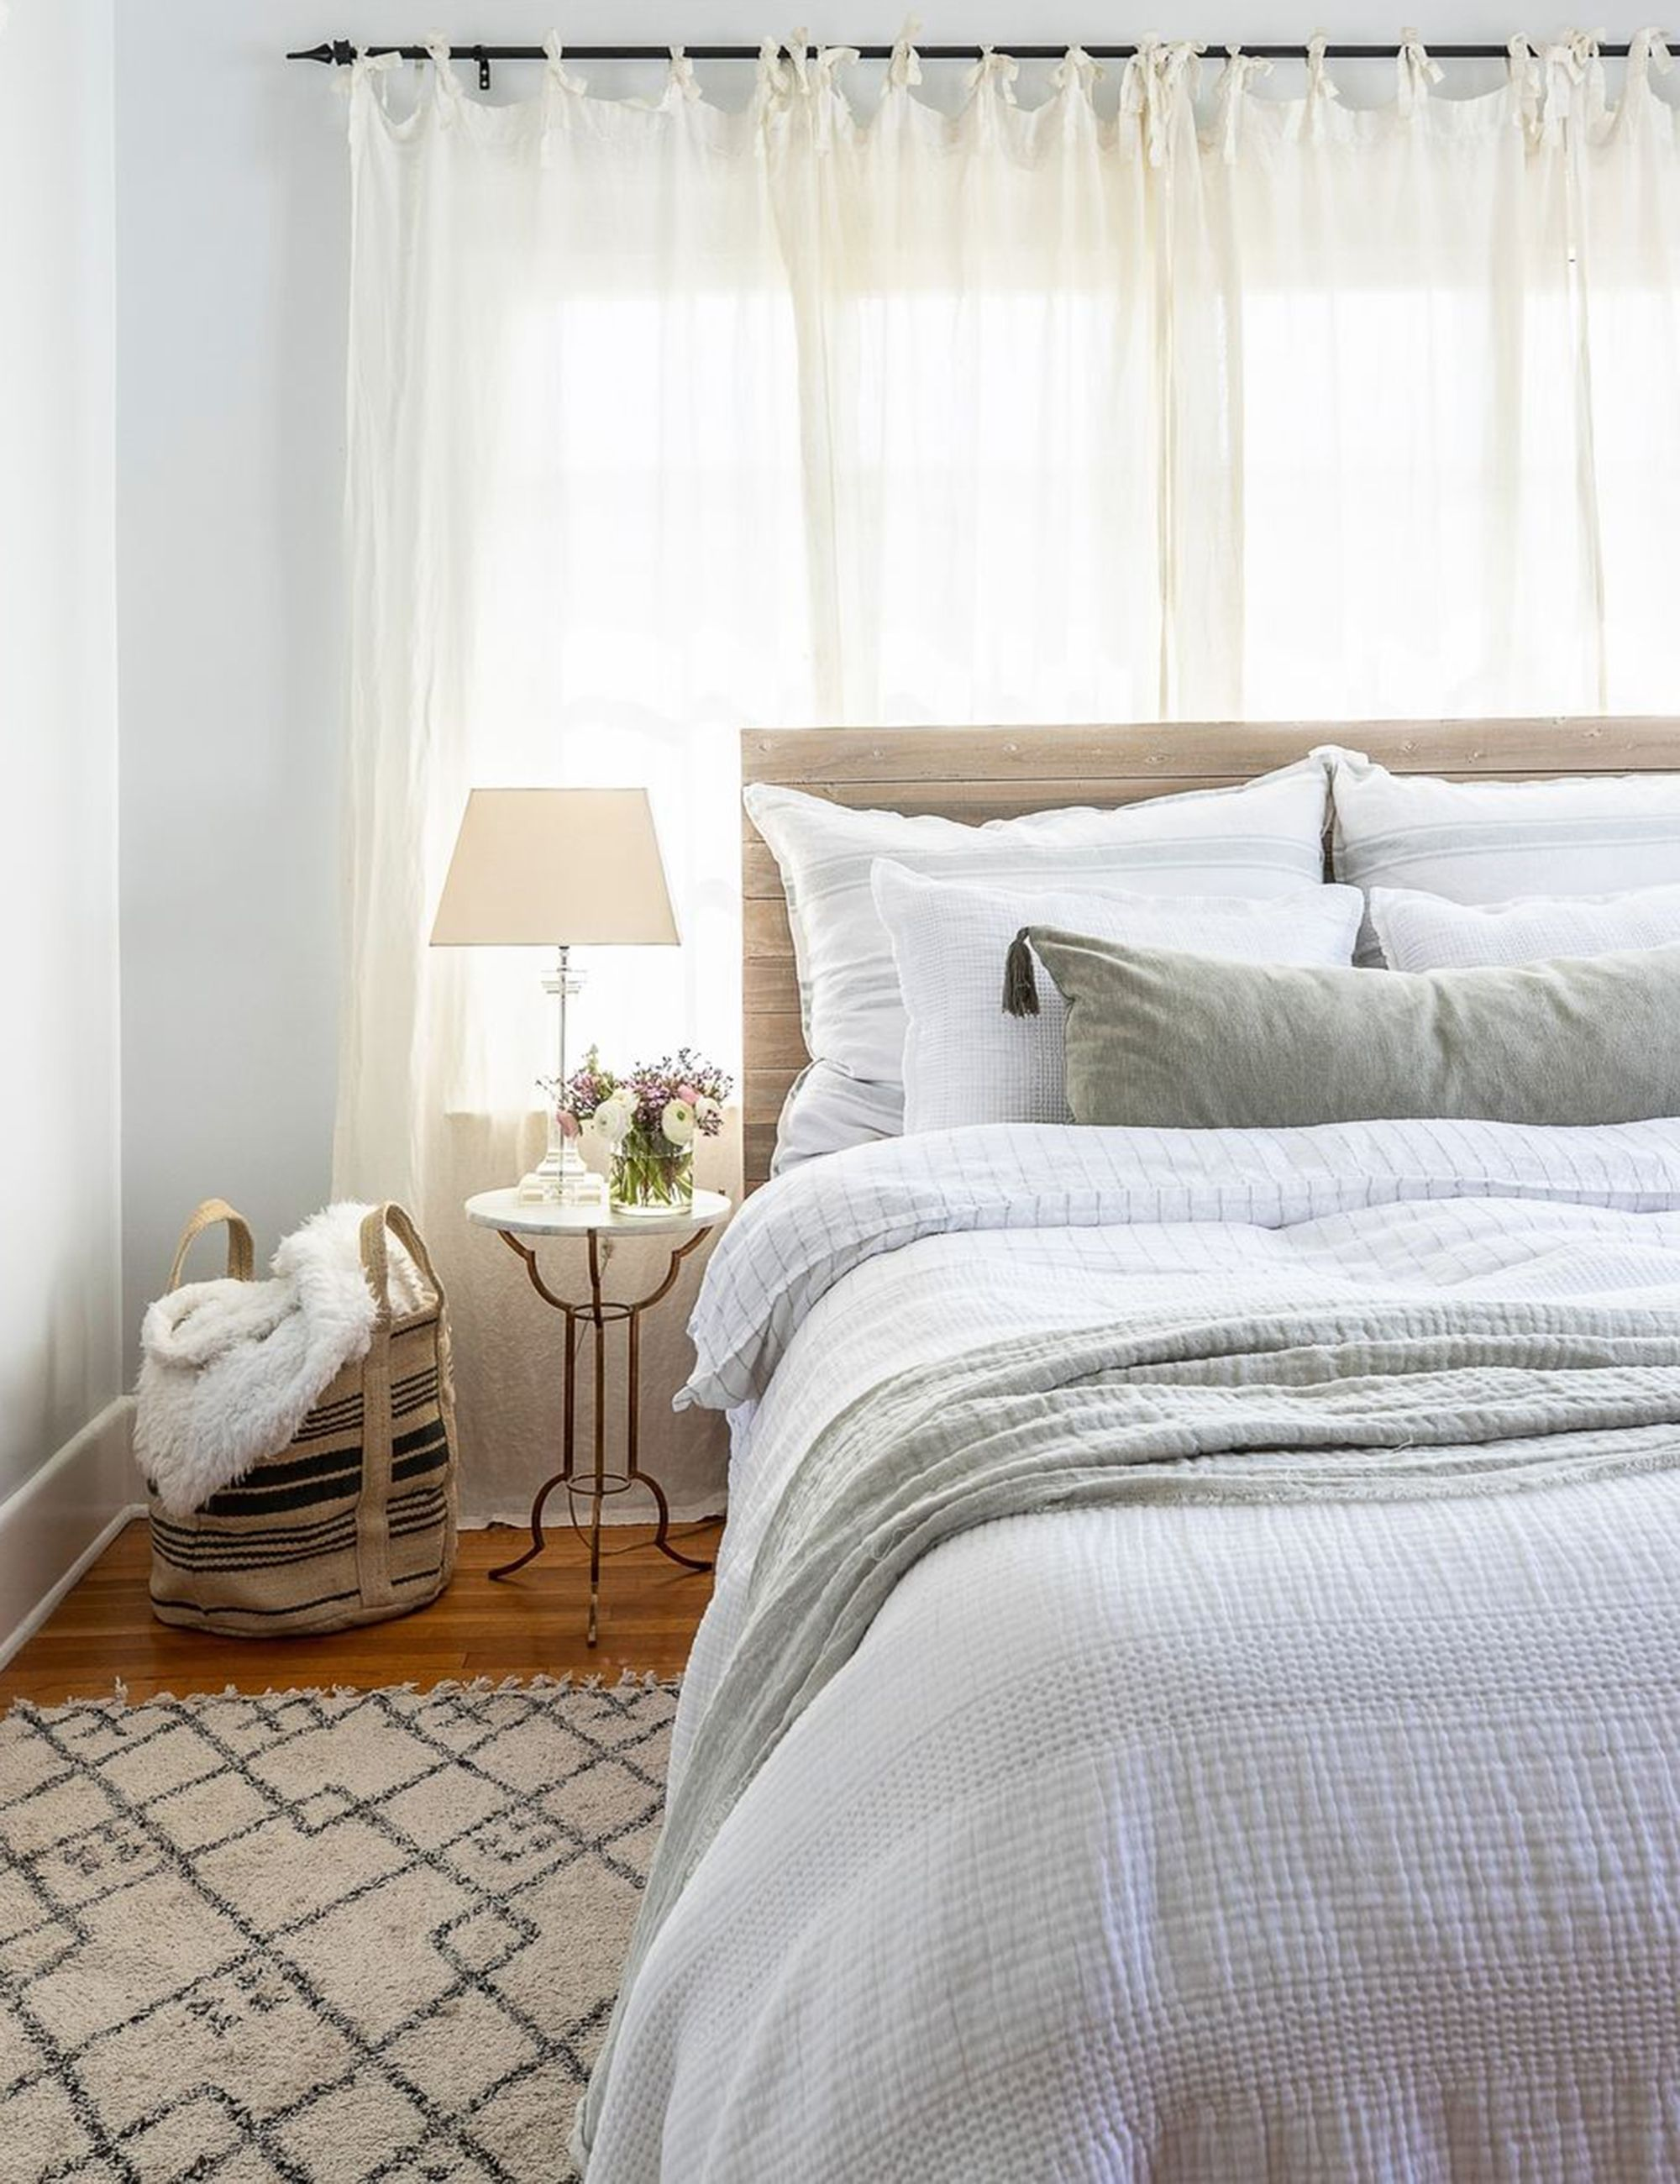 This soft, lived-in linen duvet cover is hand-loomed with an interwoven stripe for minimalist and clean style. Subtle texture within the fabric creates a mellow, inviting space to sleep and relax.